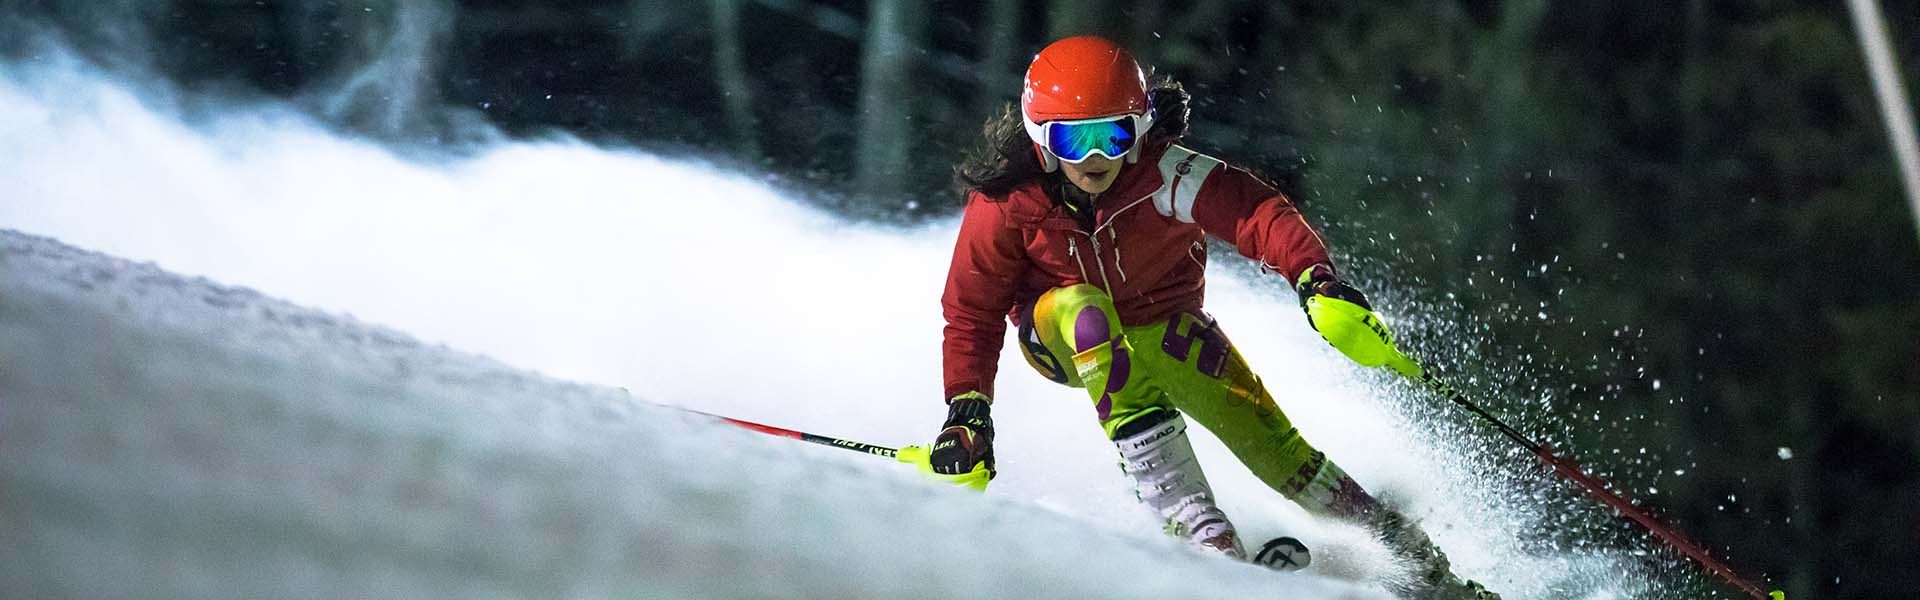 Girl skier on NASTAR race course